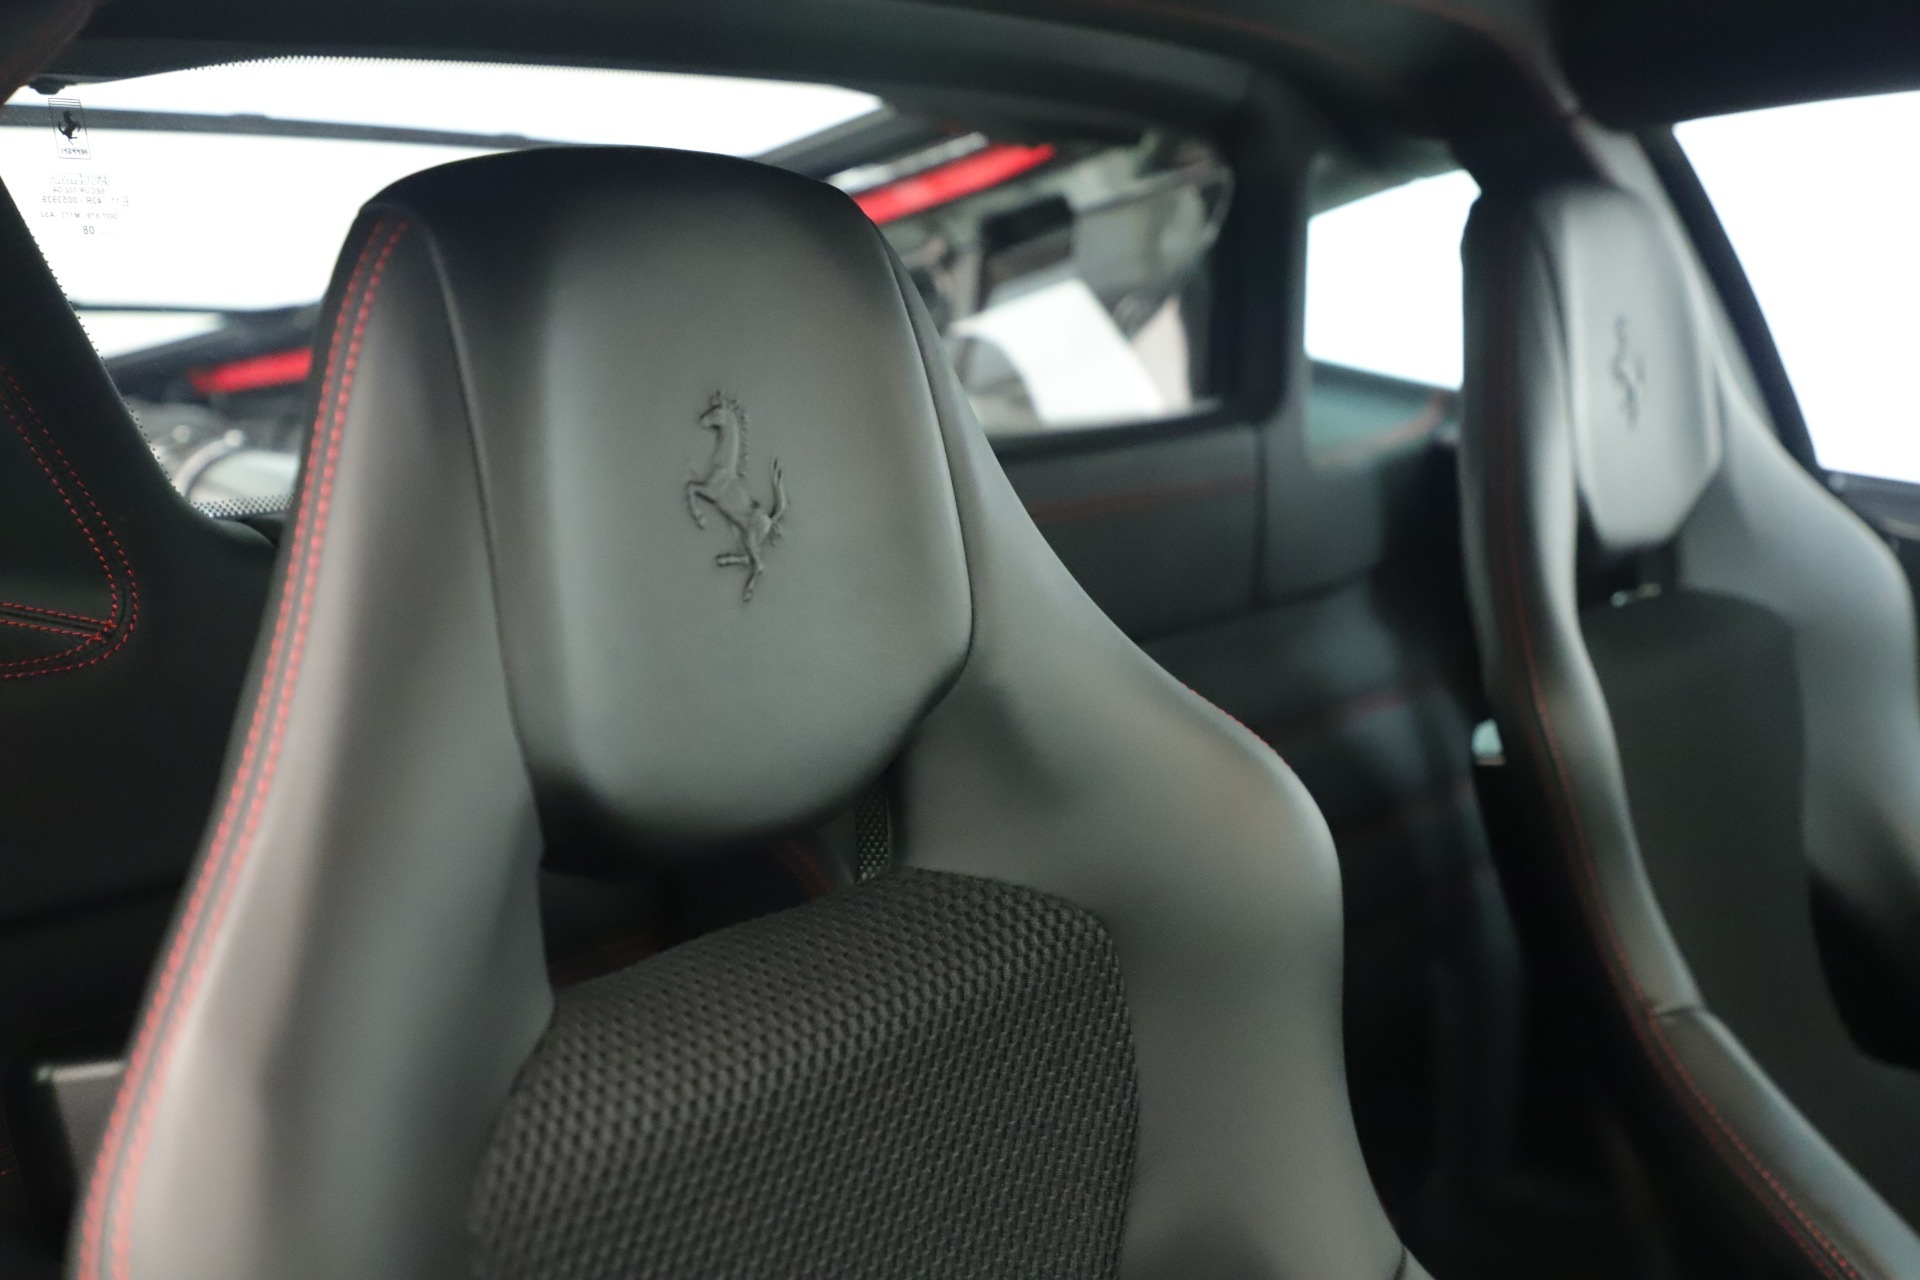 Used 2008 Ferrari F430 Scuderia For Sale In Greenwich, CT 3381_p23